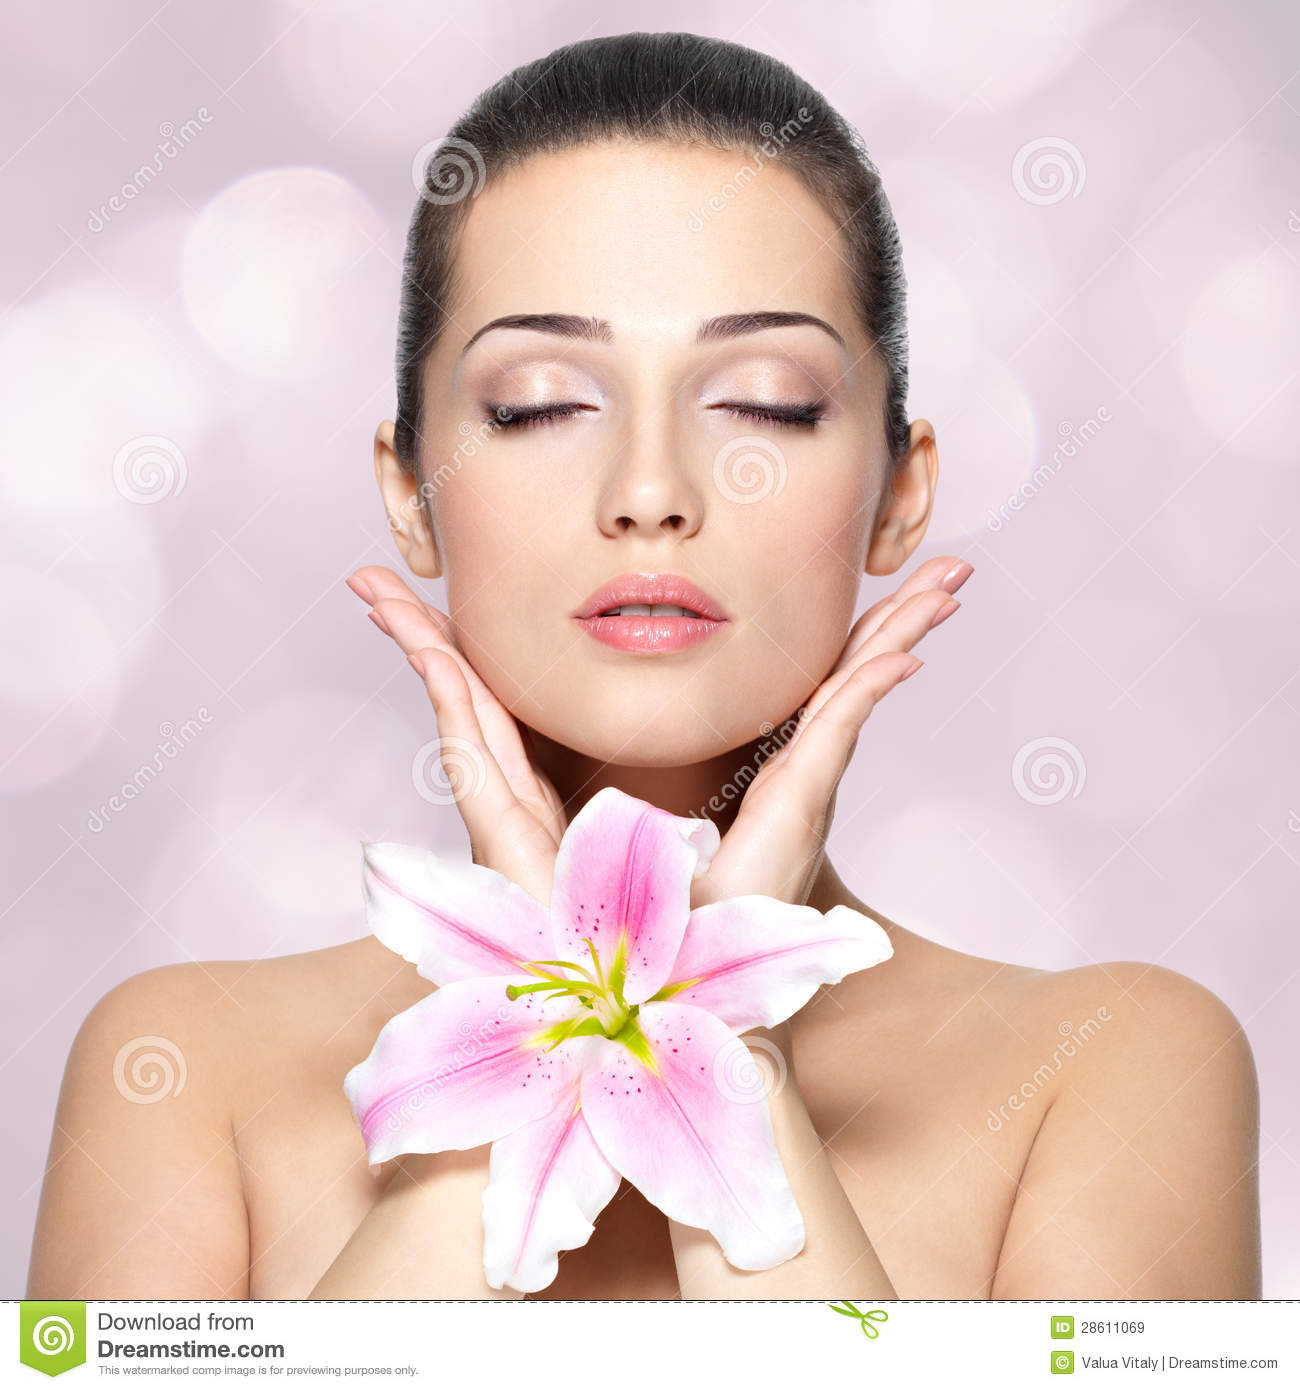 beauty-face-pretty-woman-flower-beauty-treatment-concep-28611069.jpg